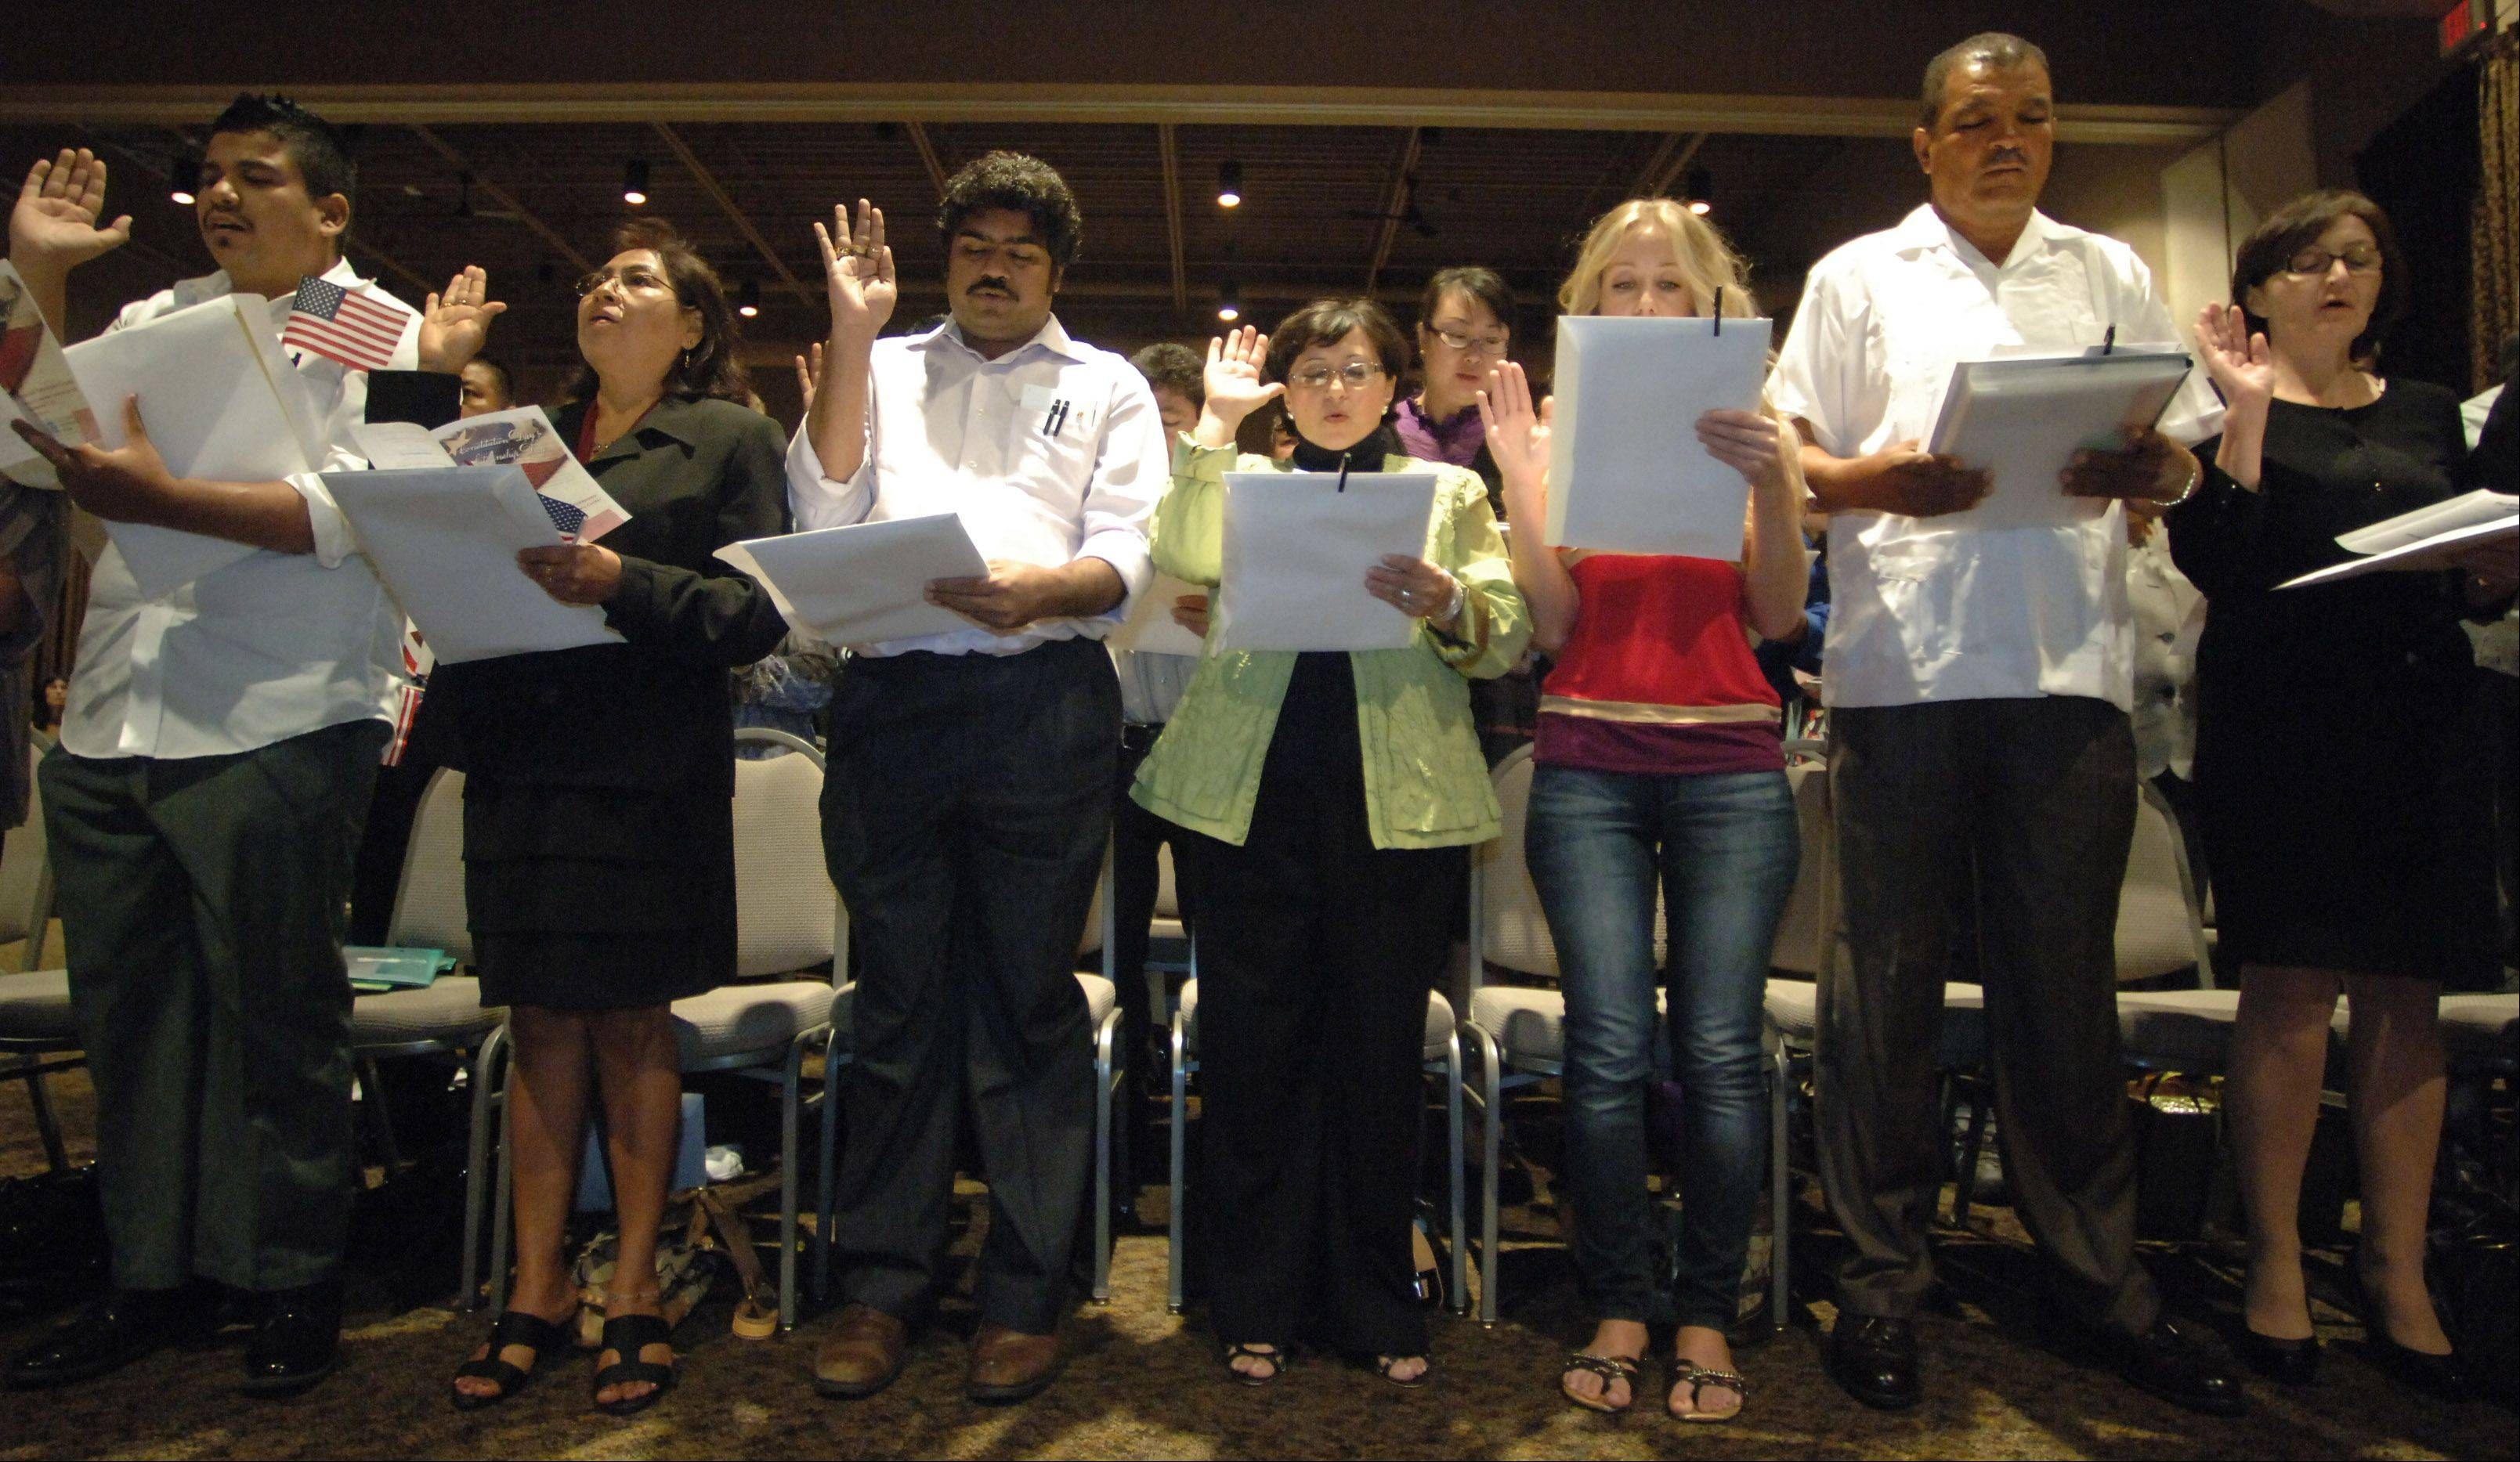 Around 100 people became United States citizens Monday during a naturalization ceremony at the Round Lake Beach Cultural & Civic Center.